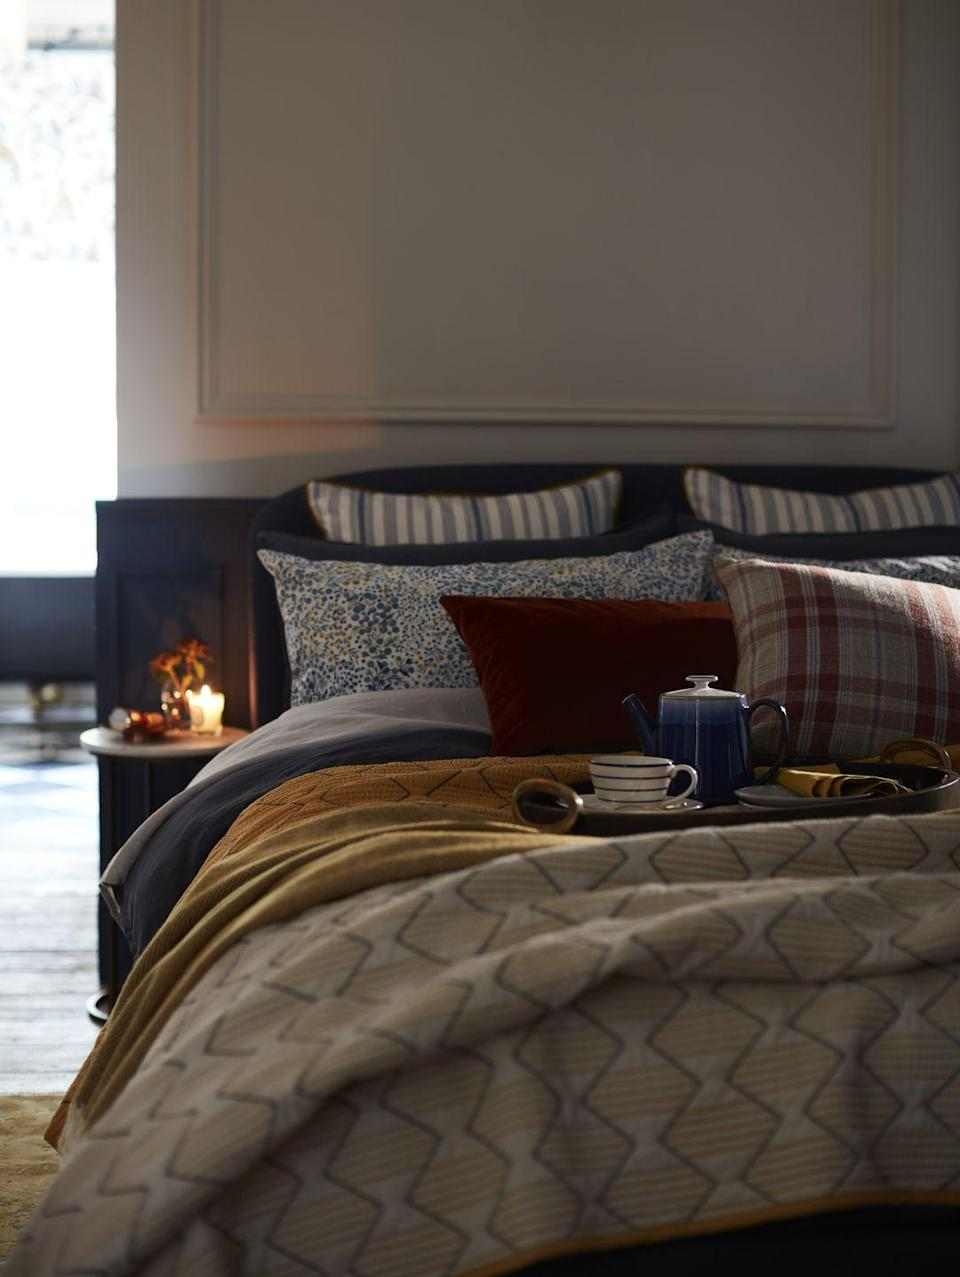 """<p>Create a stylish and welcoming retreat in your <a href=""""https://www.housebeautiful.com/uk/decorate/bedroom/a36737085/top-bedroom-design-trends-2021/"""" rel=""""nofollow noopener"""" target=""""_blank"""" data-ylk=""""slk:bedroom"""" class=""""link rapid-noclick-resp"""">bedroom</a> with a new winter-ready duvet cover. Soft furnishings and accessories never fail to brighten a dull, cold day. </p>"""